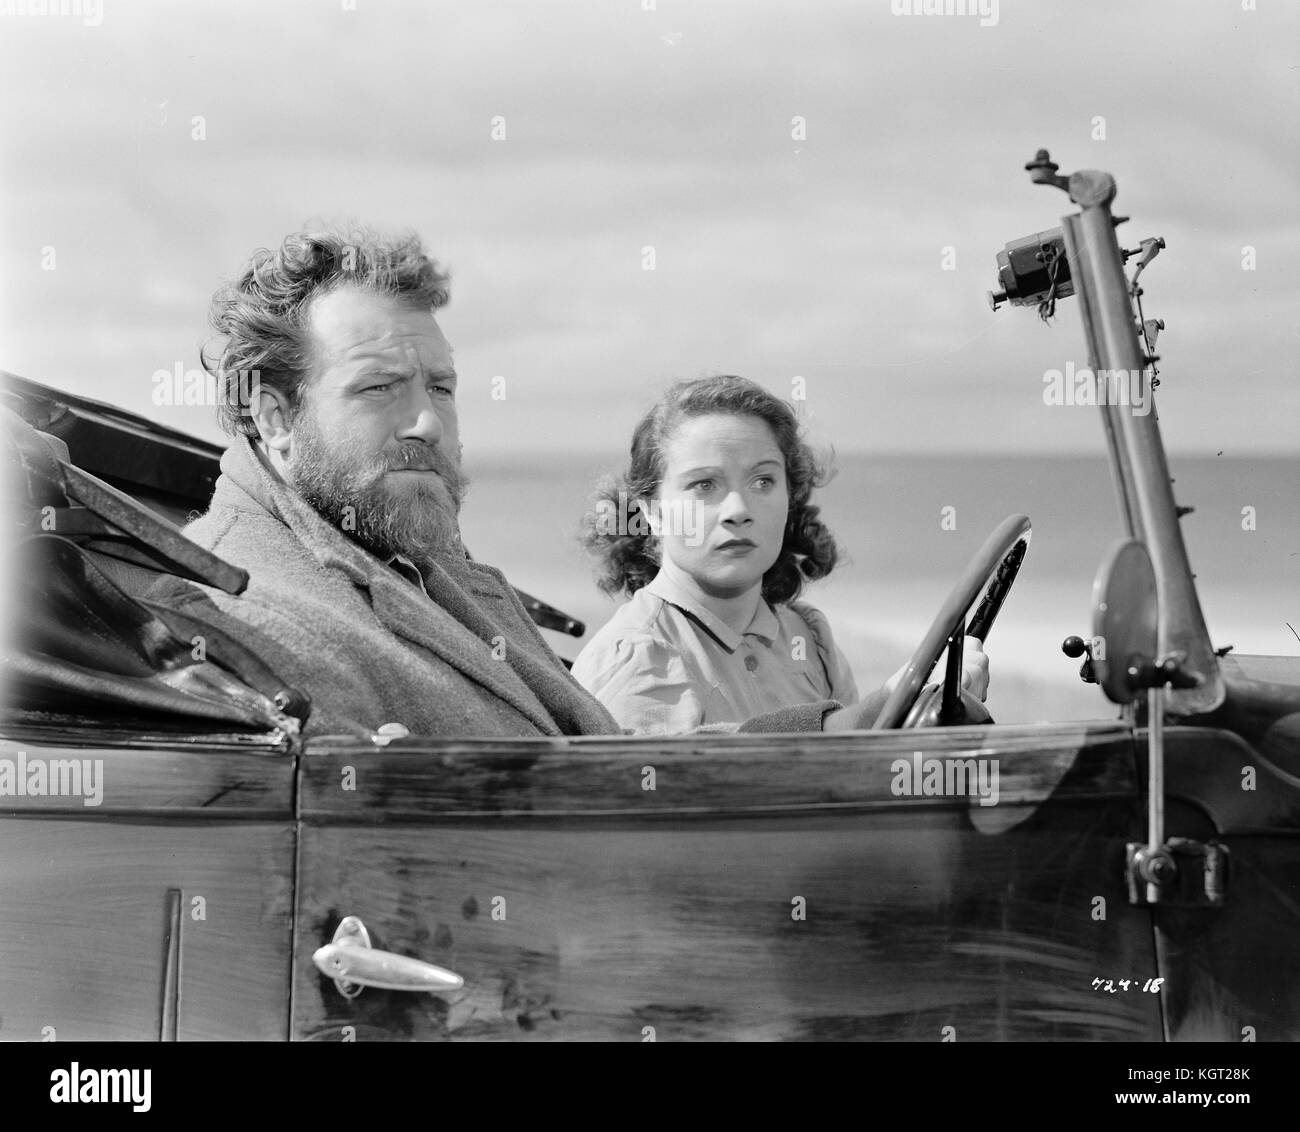 Whisky Galore (1949), James Robertson Justice, Gabrielle Blunt - Stock Image